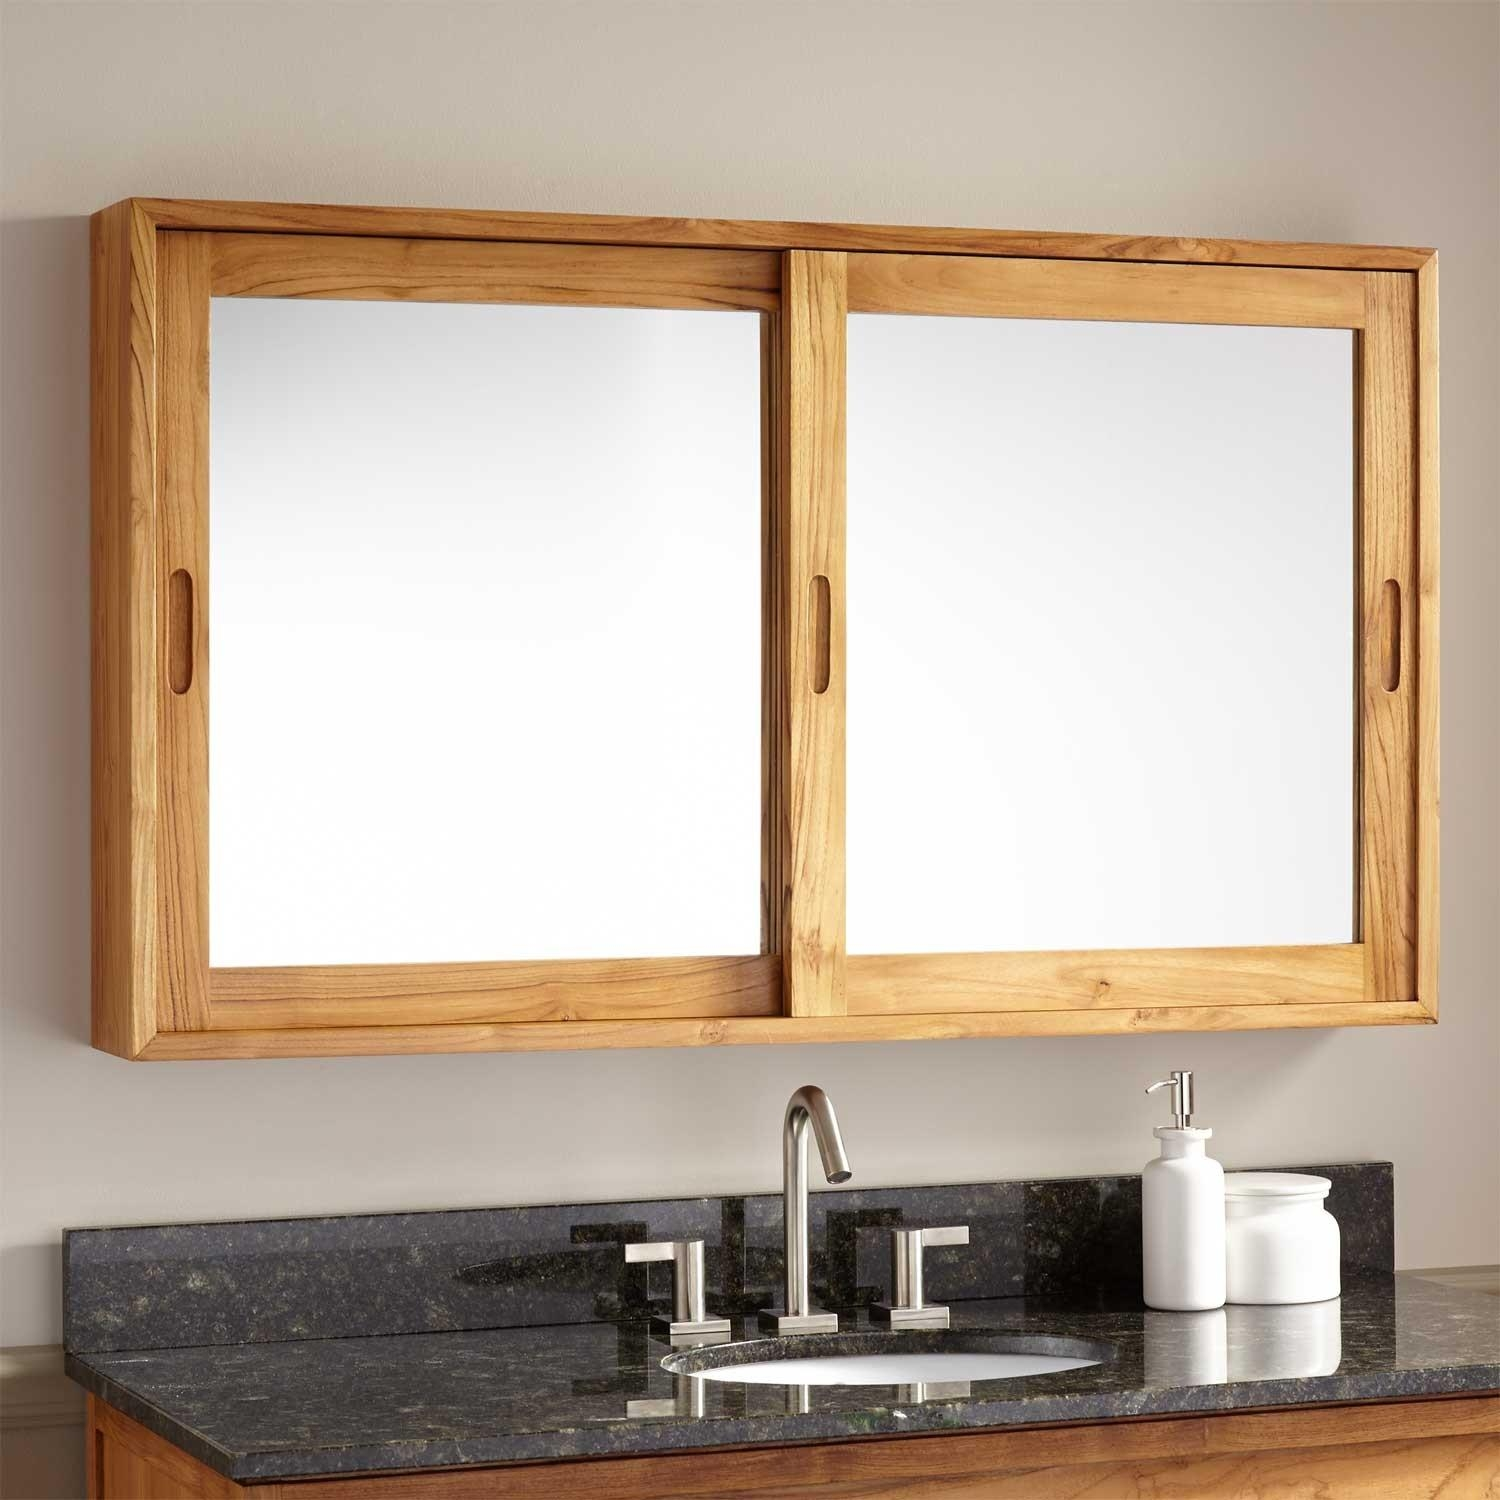 Elegant Medicine Cabinets Surface Mount With Mirrors 14 For Your Within Rona Mirrors (Photo 17 of 20)